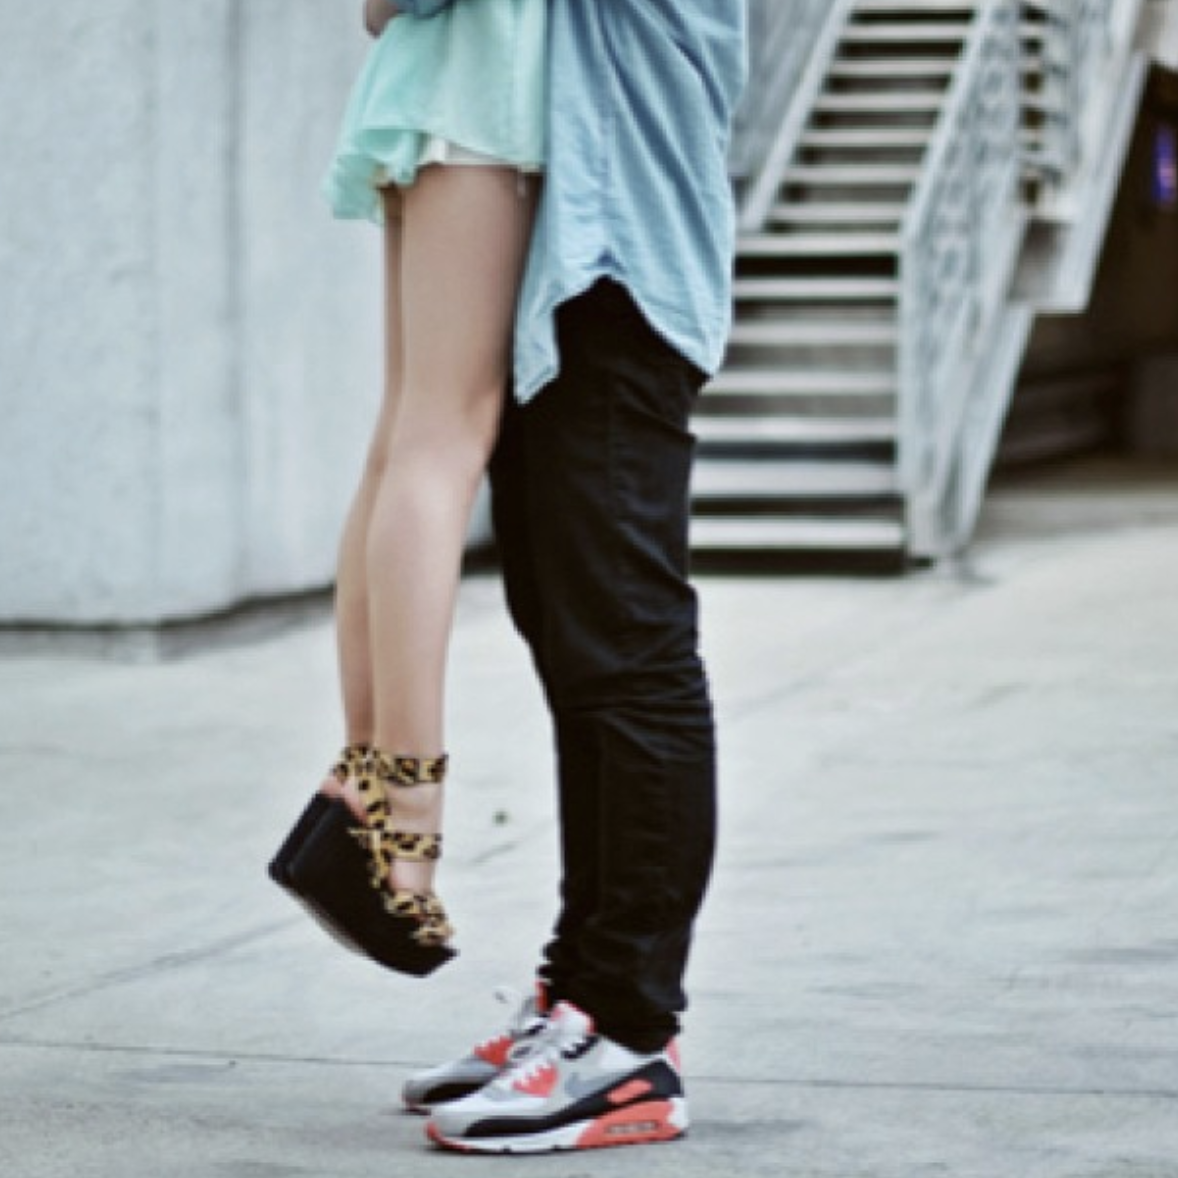 15 Undeniable Facts About Men: Do Guys Like Short Girls